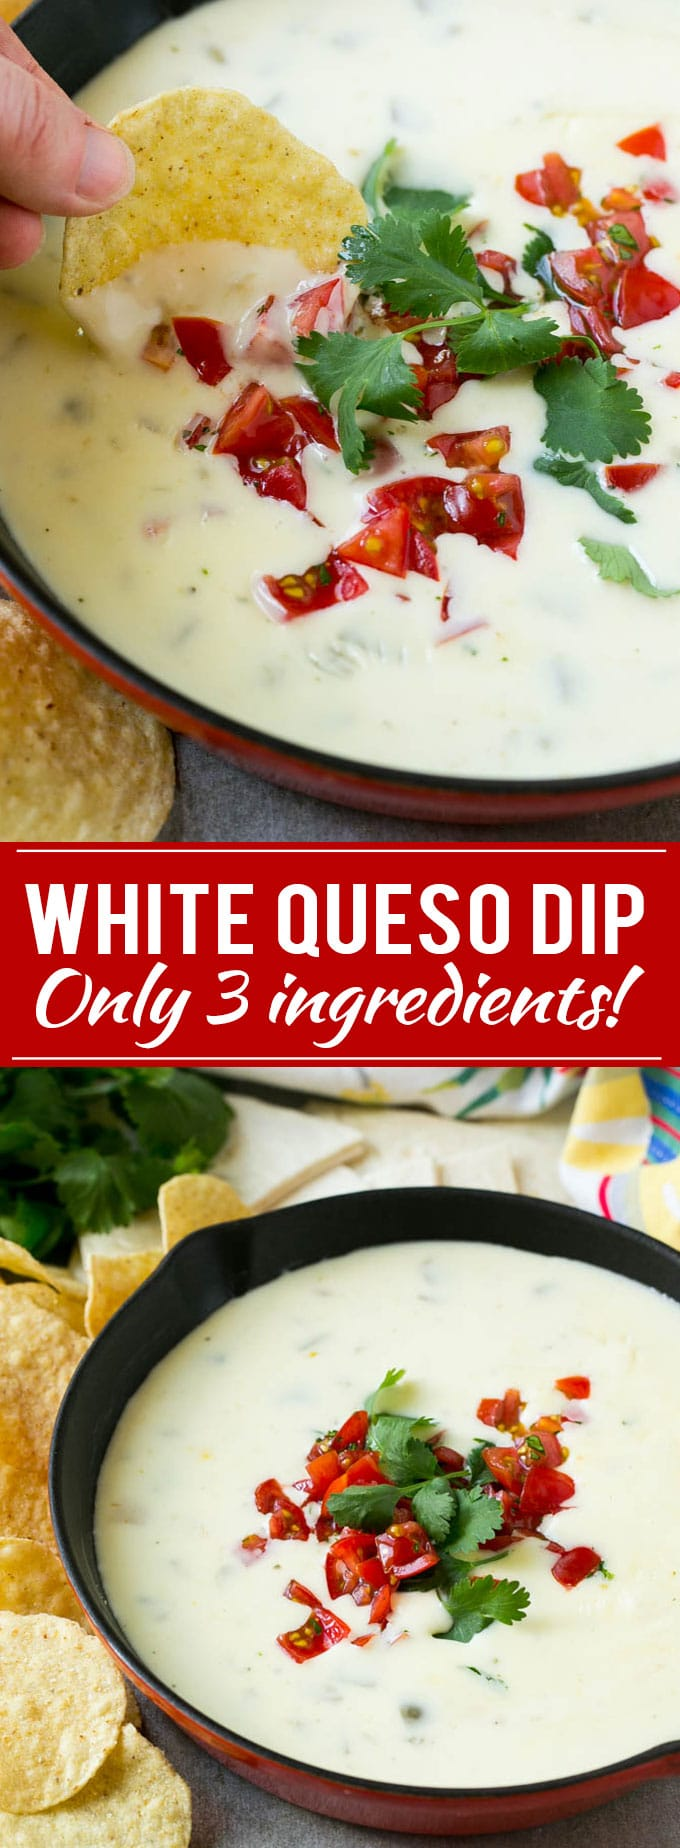 how to make white queso dip